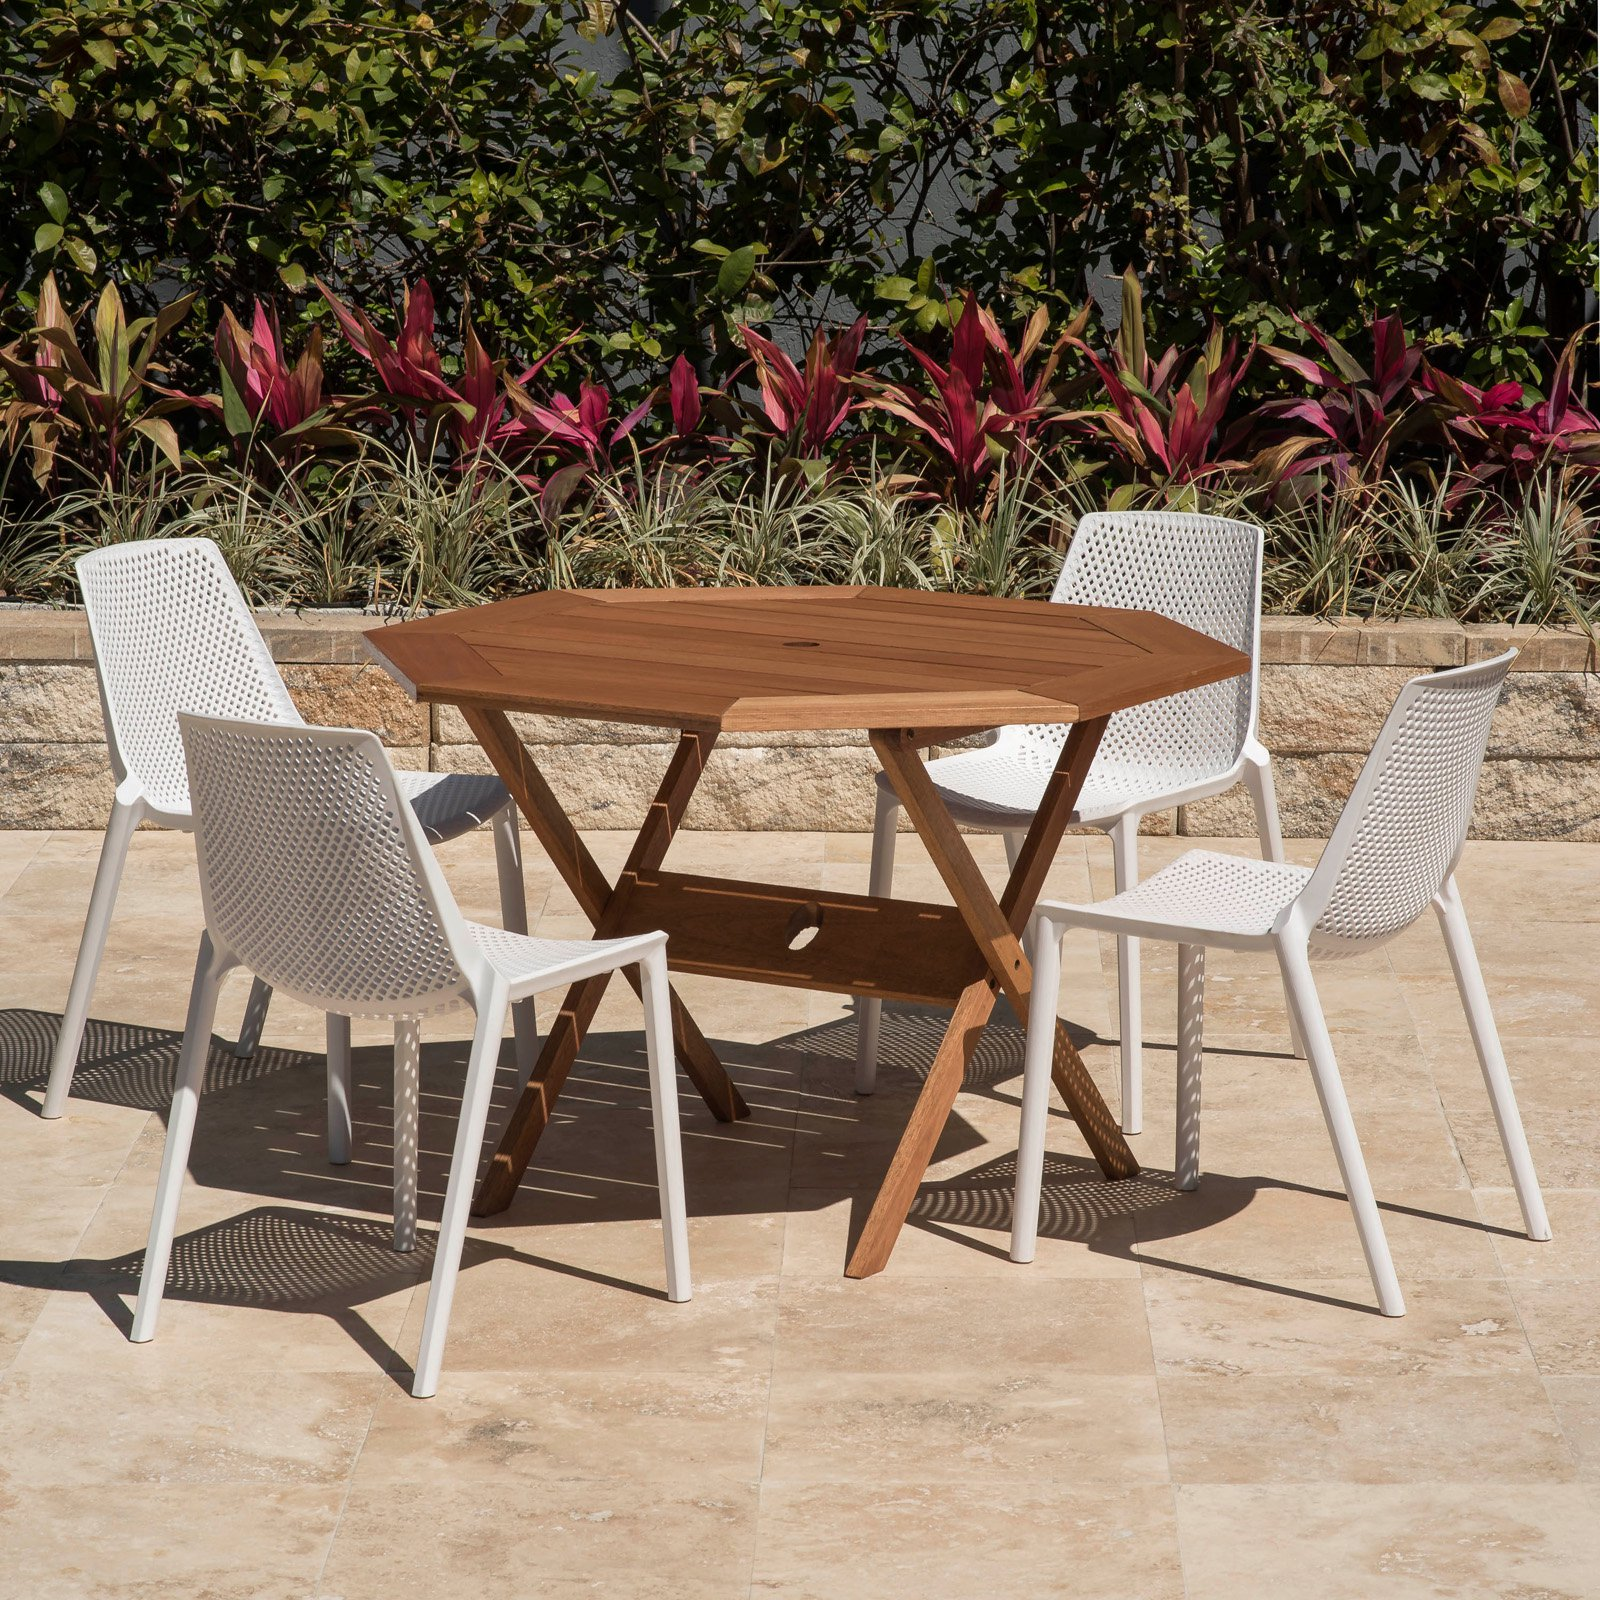 Amazonia Positiano 5 Piece Octagonal Patio Dining Table Set